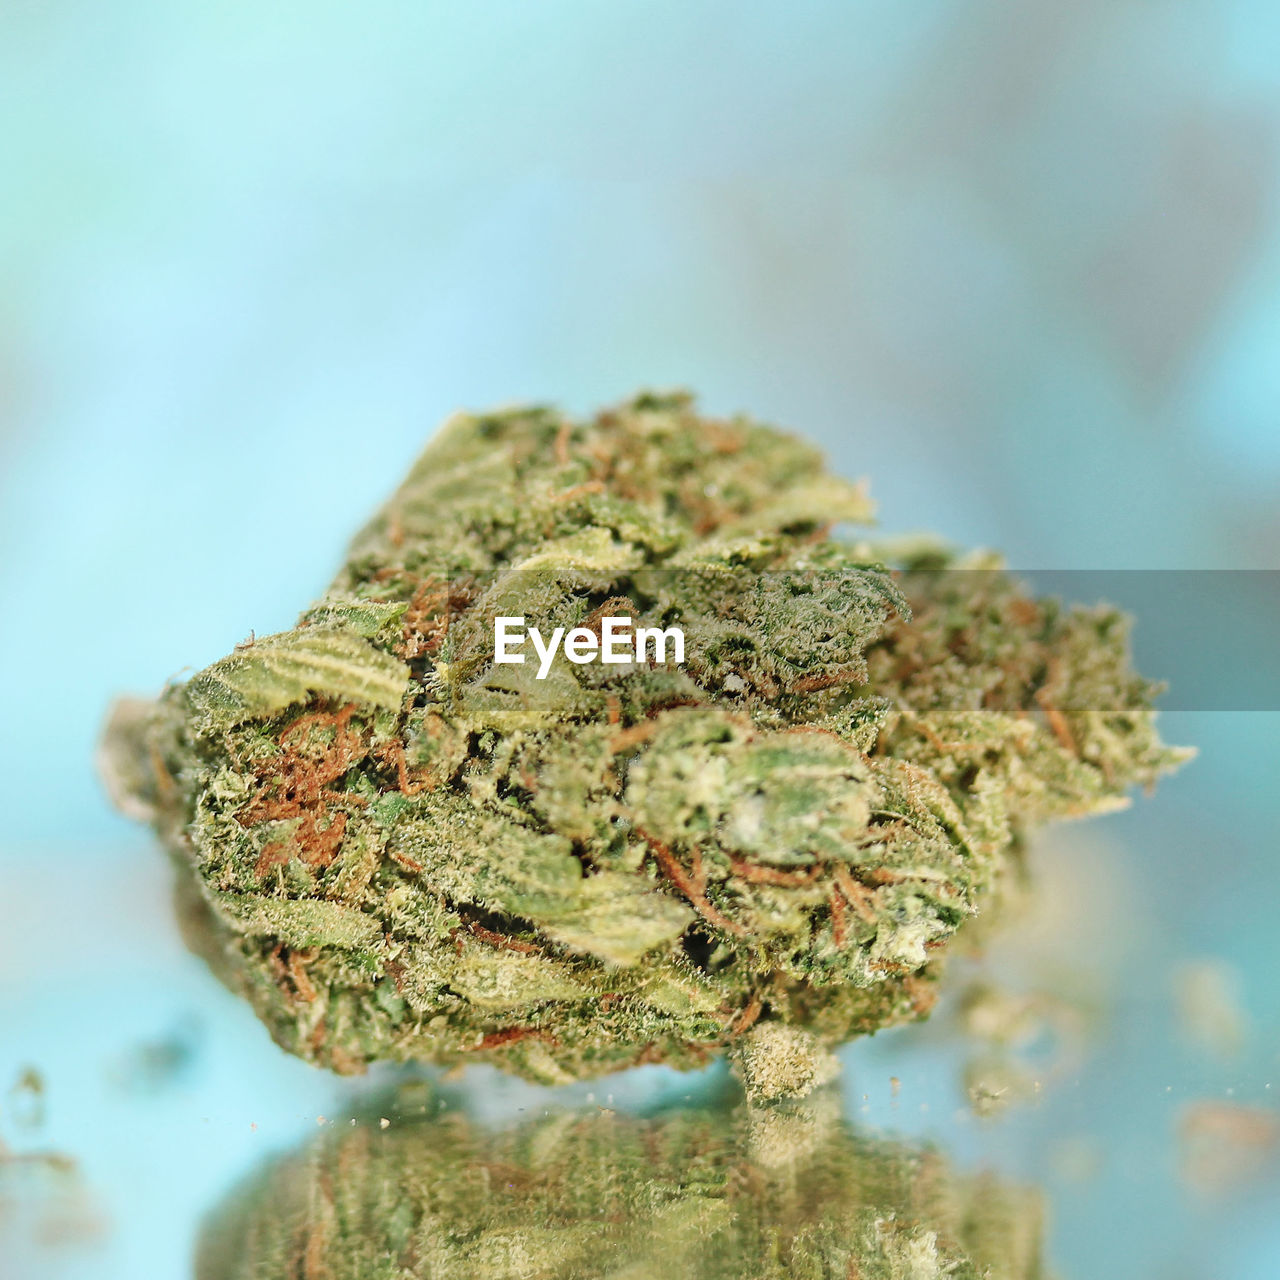 marijuana - herbal cannabis, cannabis plant, healthcare and medicine, close-up, plant, narcotic, selective focus, medicine, cannabis - narcotic, herbal medicine, no people, alternative medicine, medical cannabis, indoors, social issues, nature, focus on foreground, beauty in nature, herb